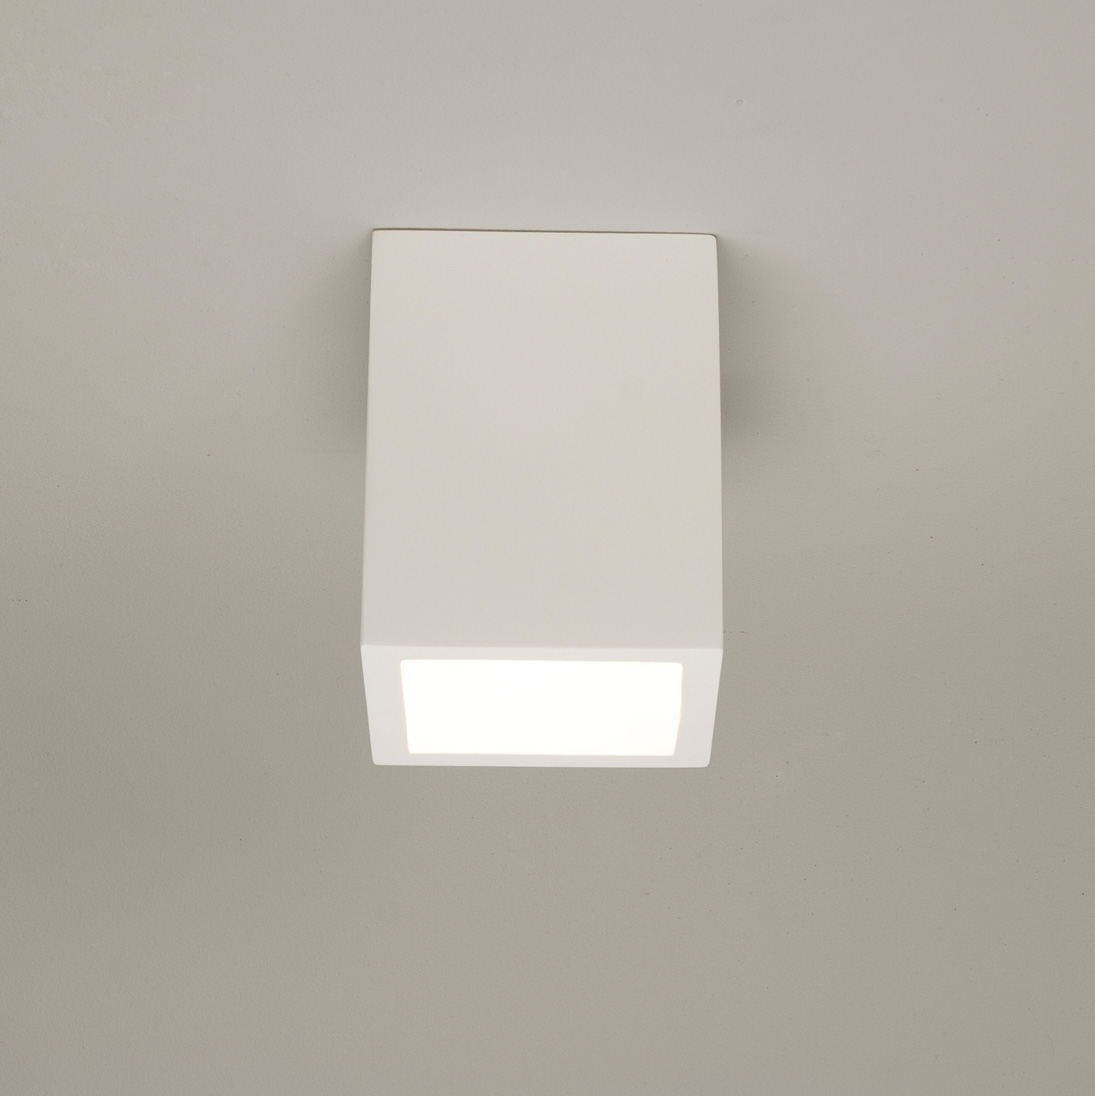 Astro osca 140 square surface plaster ceiling light 13w gu10 cfl led astro osca 140 square surface plaster ceiling light 13w gu10 cfl led lamp white aloadofball Image collections